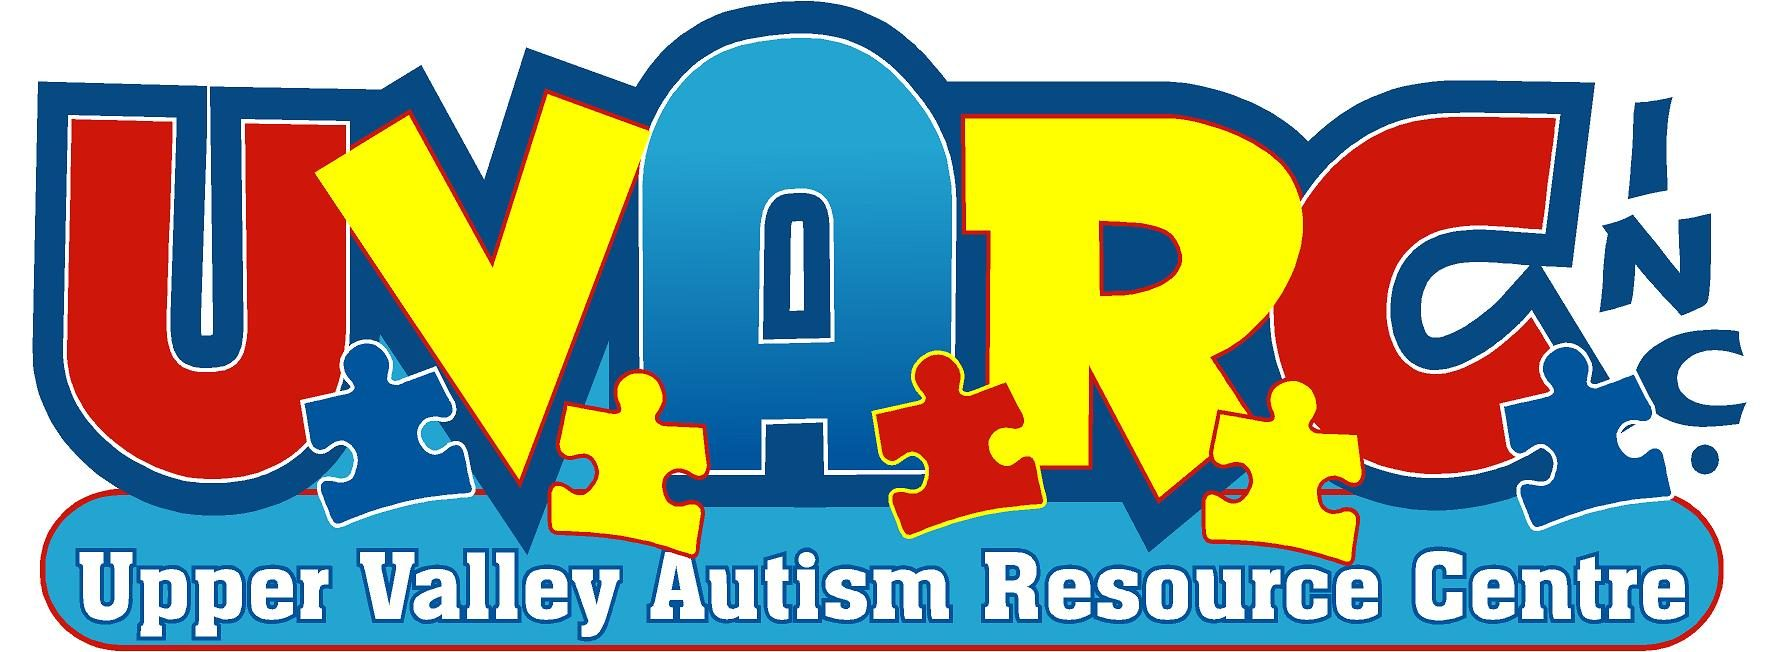 Upper Valley Autism Resource Centre Inc